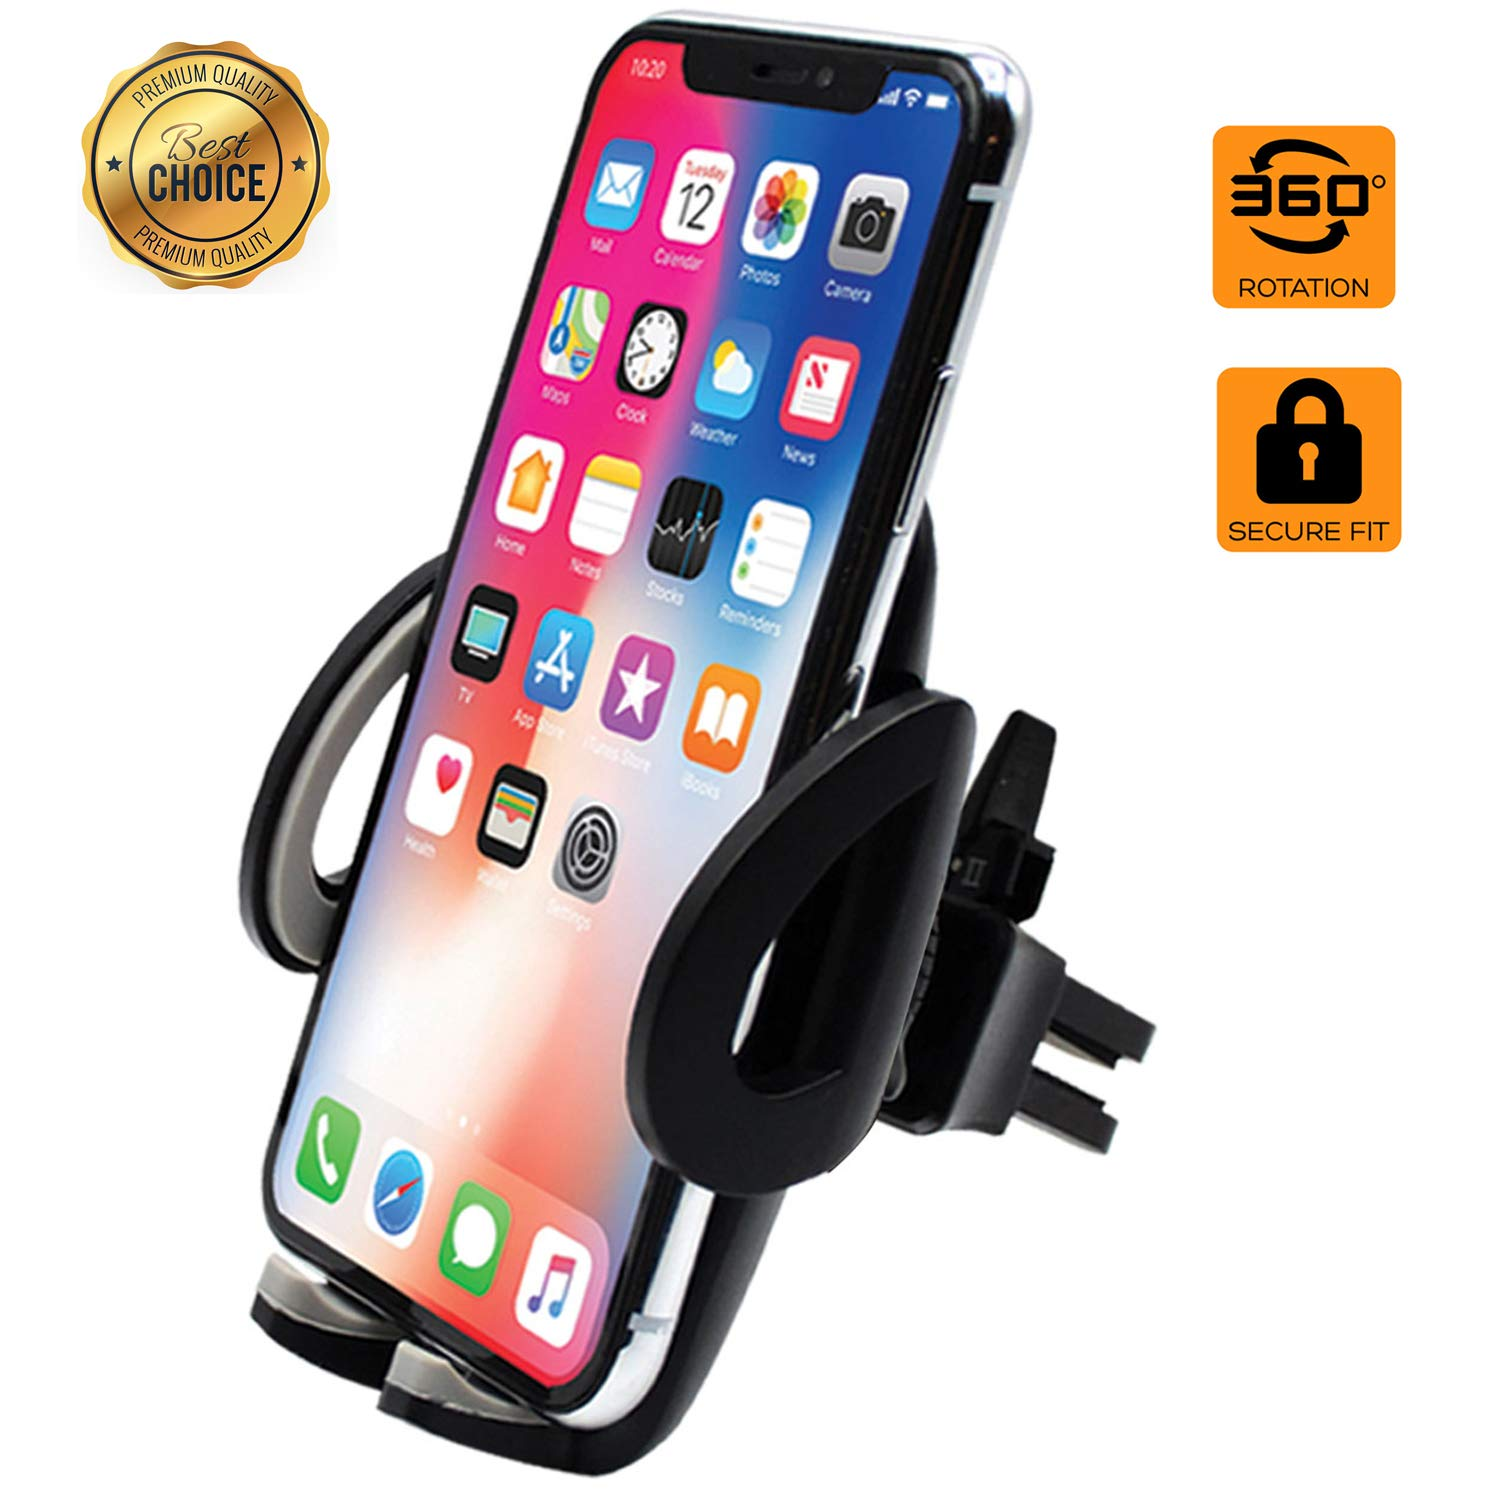 Air Vent Car Mount,Phone Holder,Car Phone Mount,Car Phone Holder Car